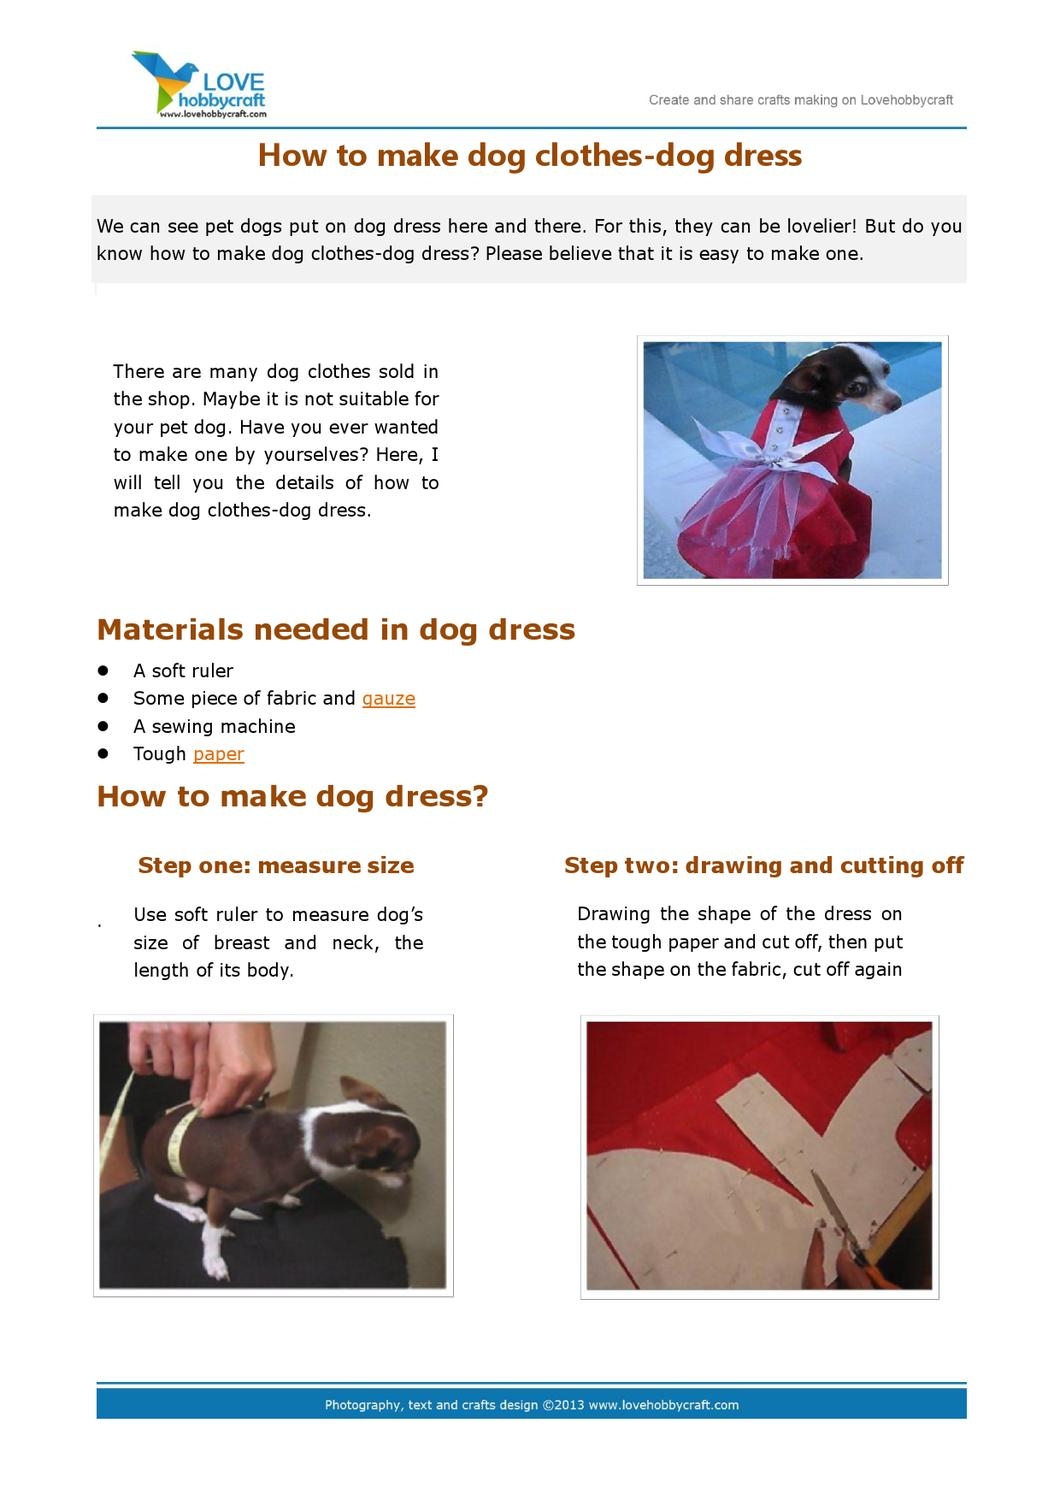 How to make dog clothes dog dress by green ada issuu for How to make a shirt for your dog